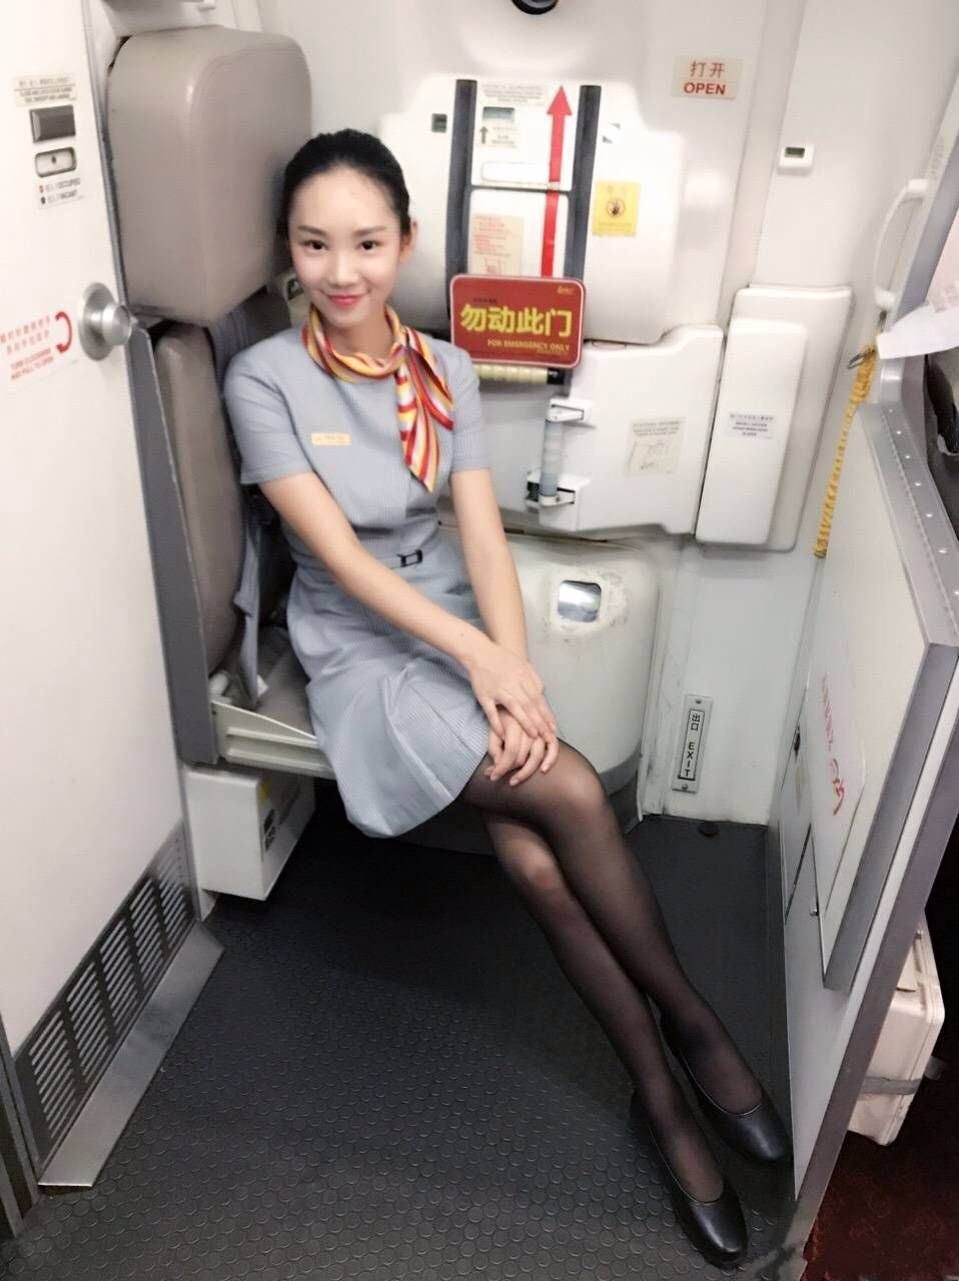 China southern airlines sex tape hd videos - 4 3